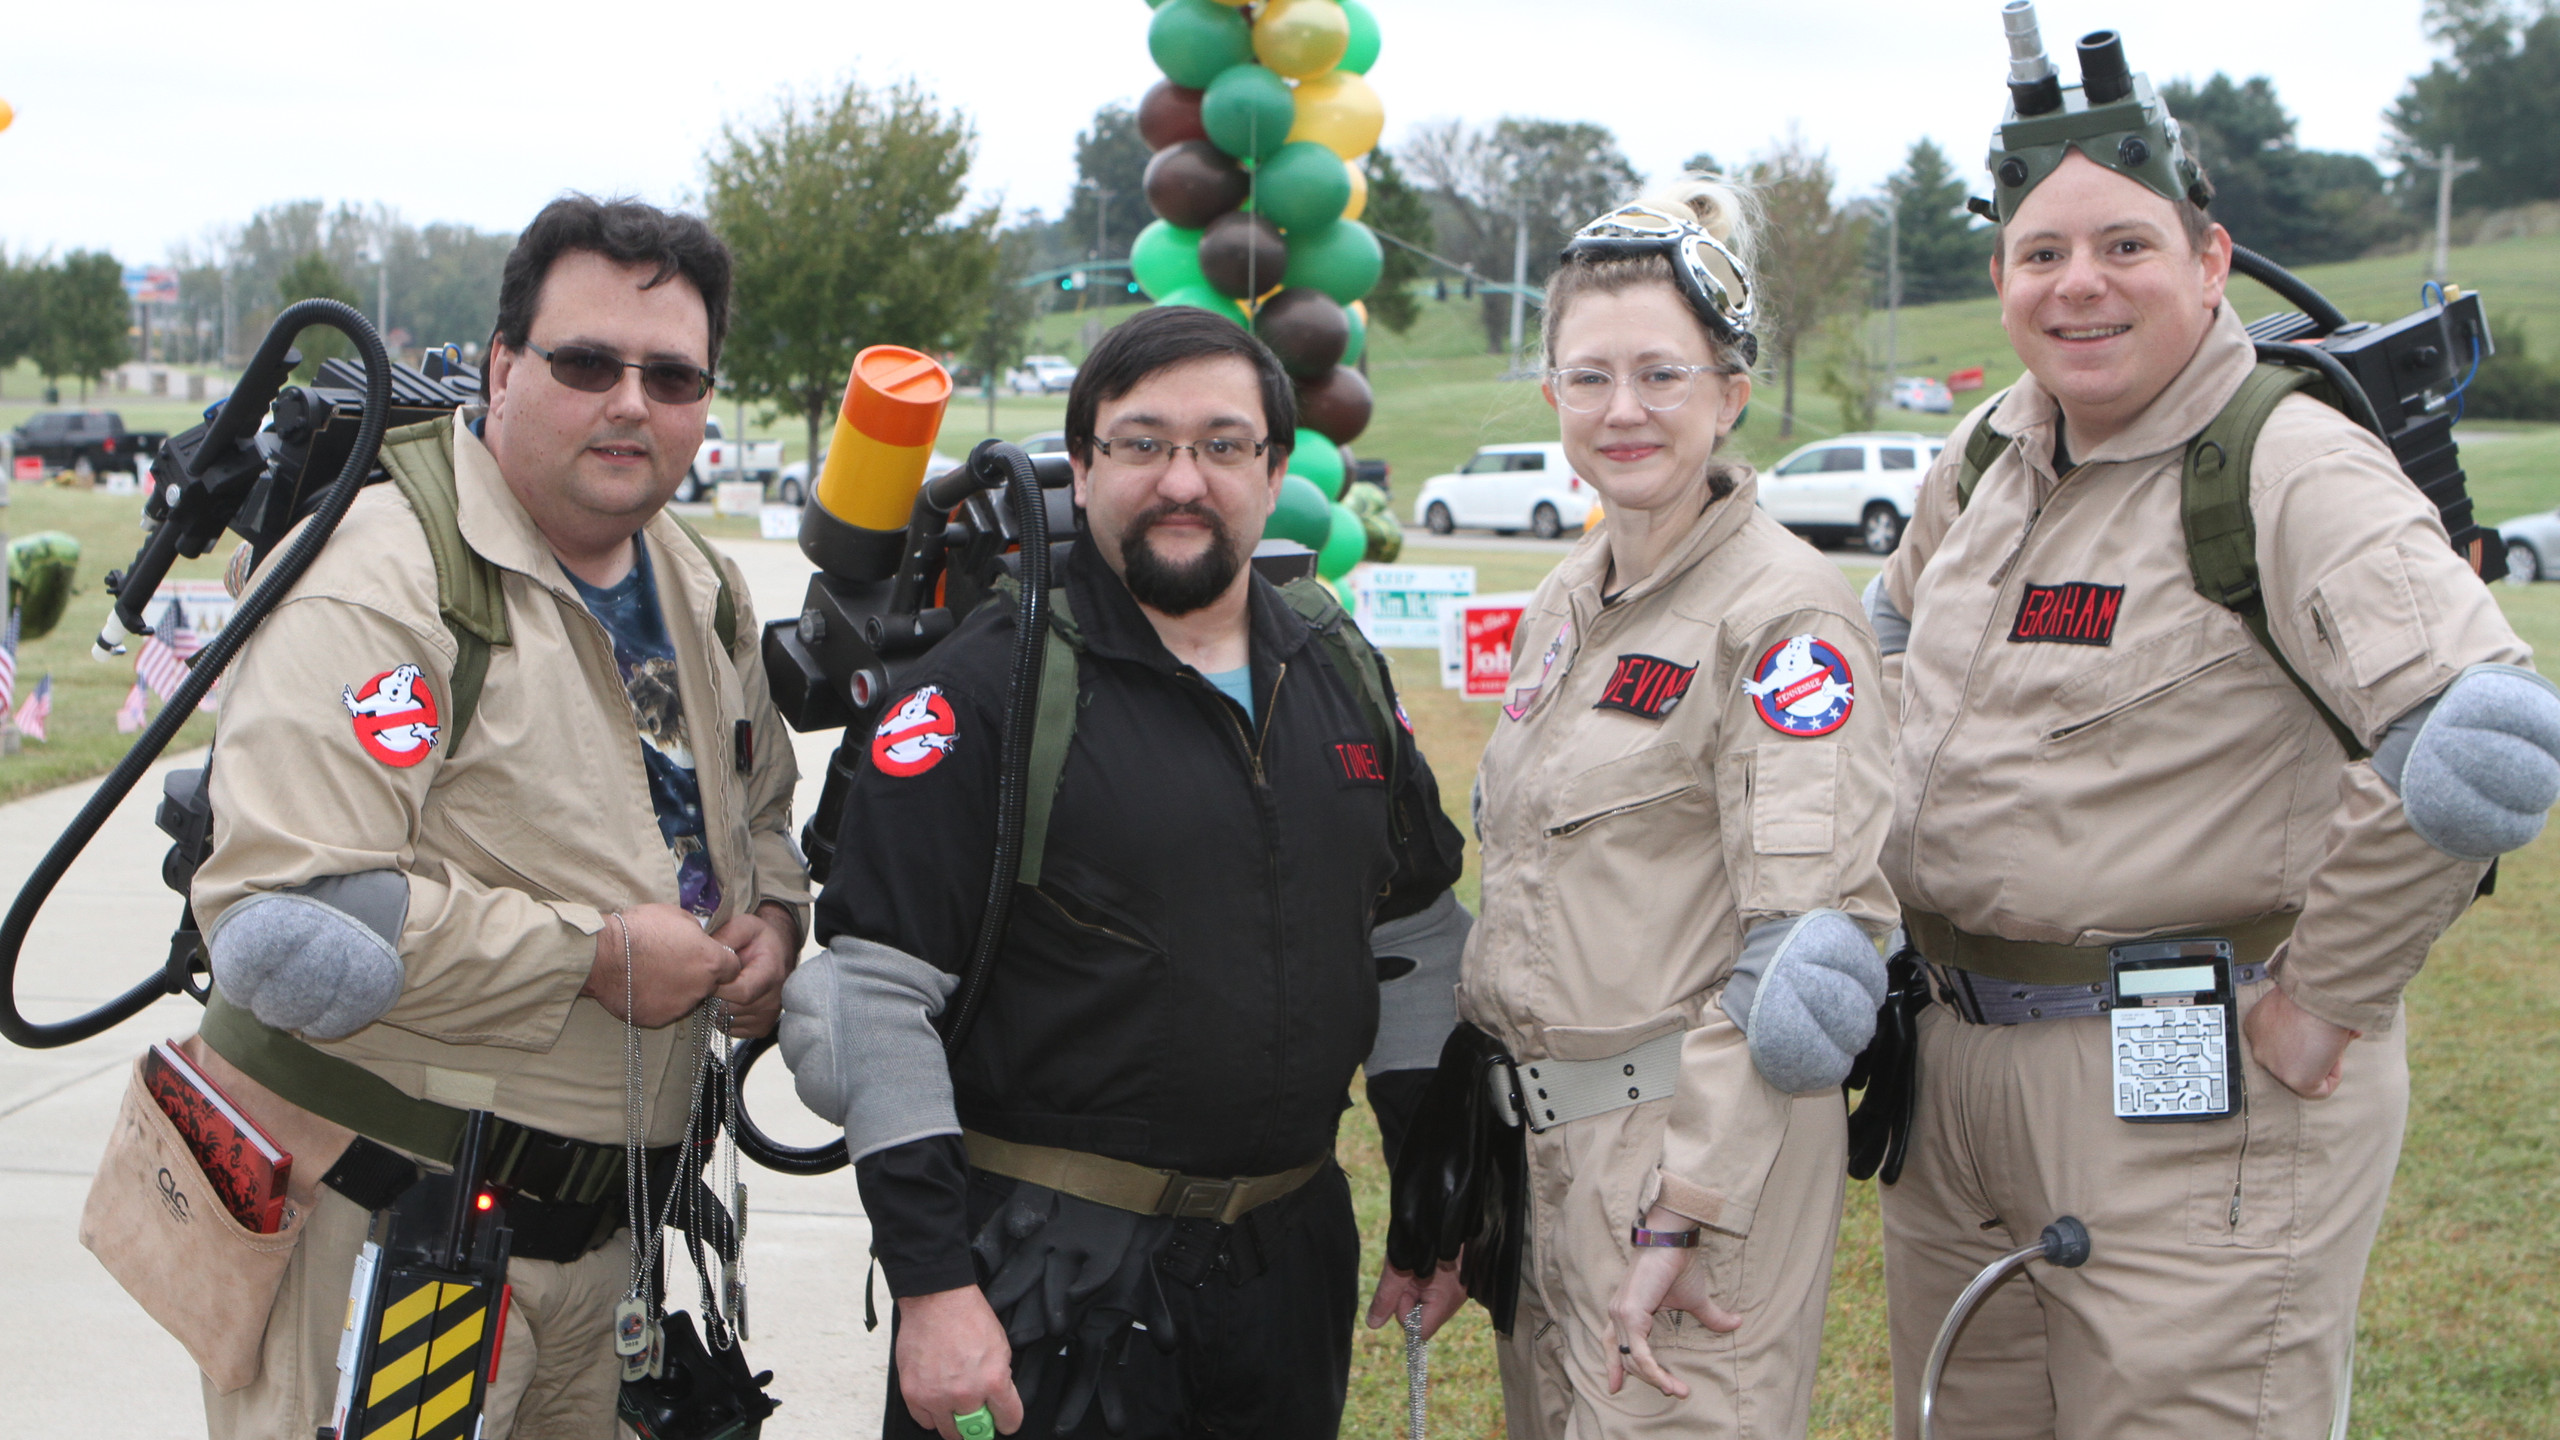 Ghostbusters Christopher Duncan, Joe Ton